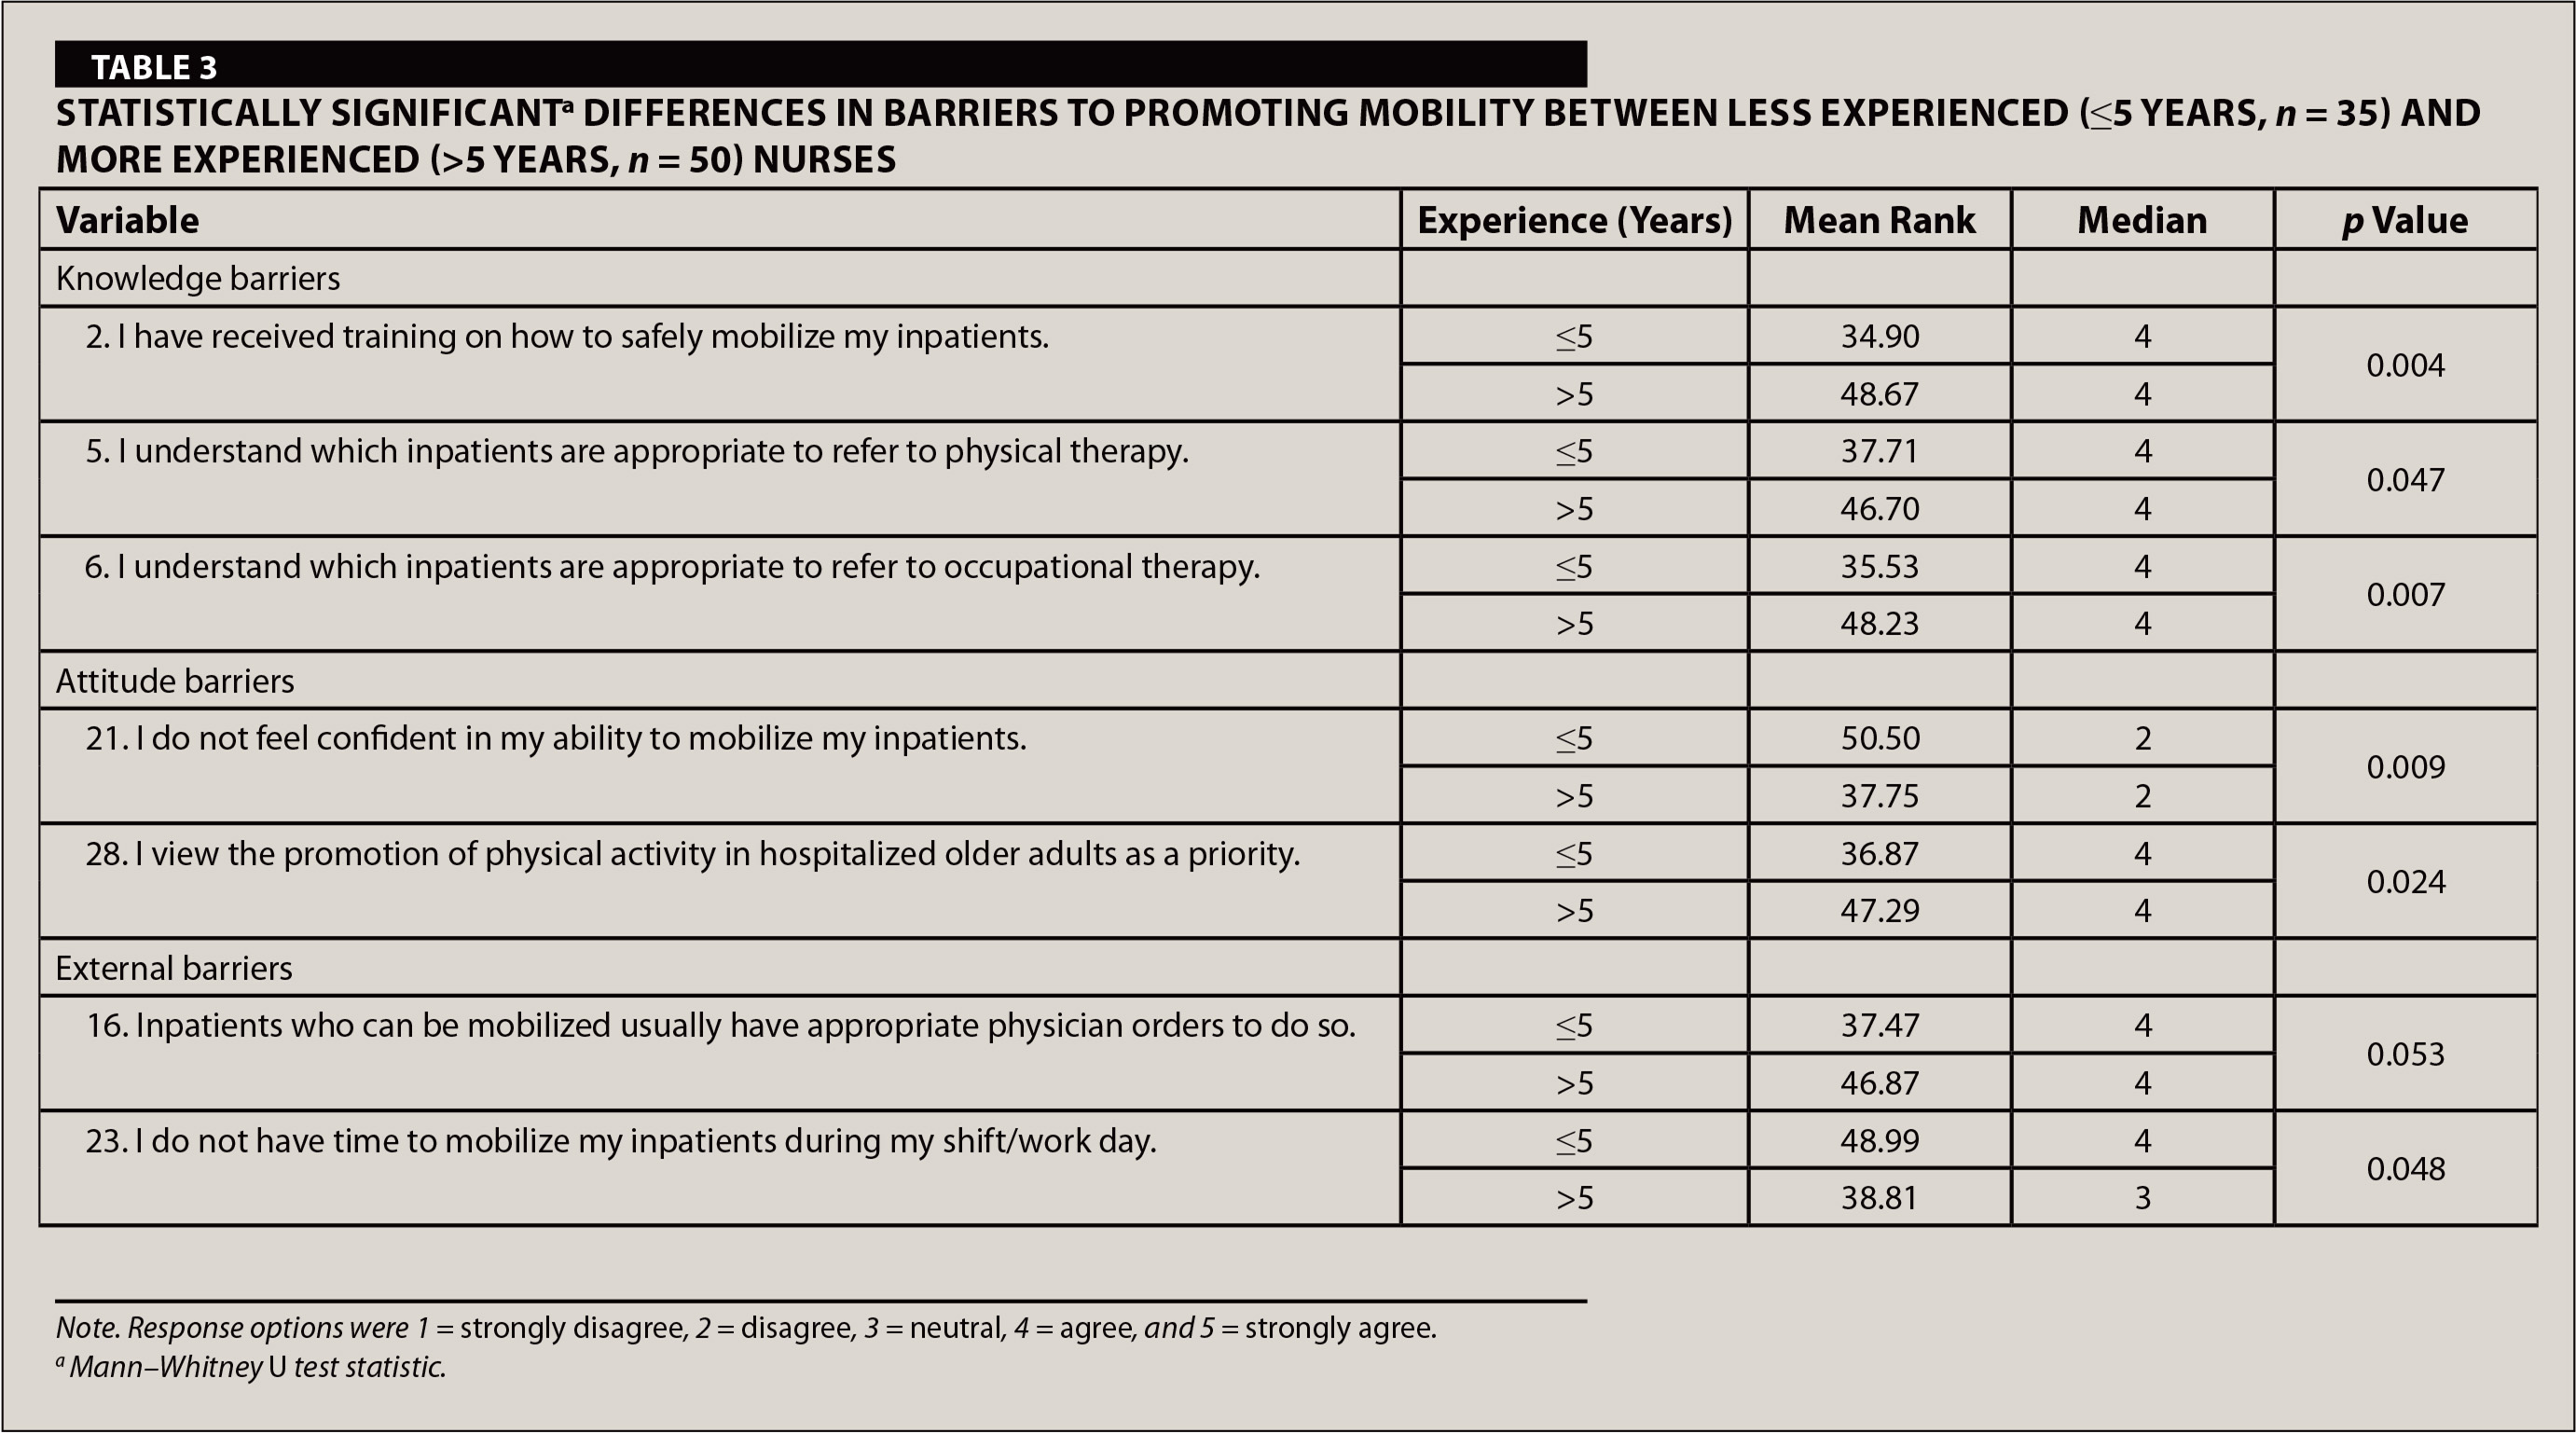 Statistically Significanta Differences in Barriers to Promoting Mobility Between Less Experienced (≤5 Years, n = 35) and More Experienced (>5 Years, n = 50) Nurses